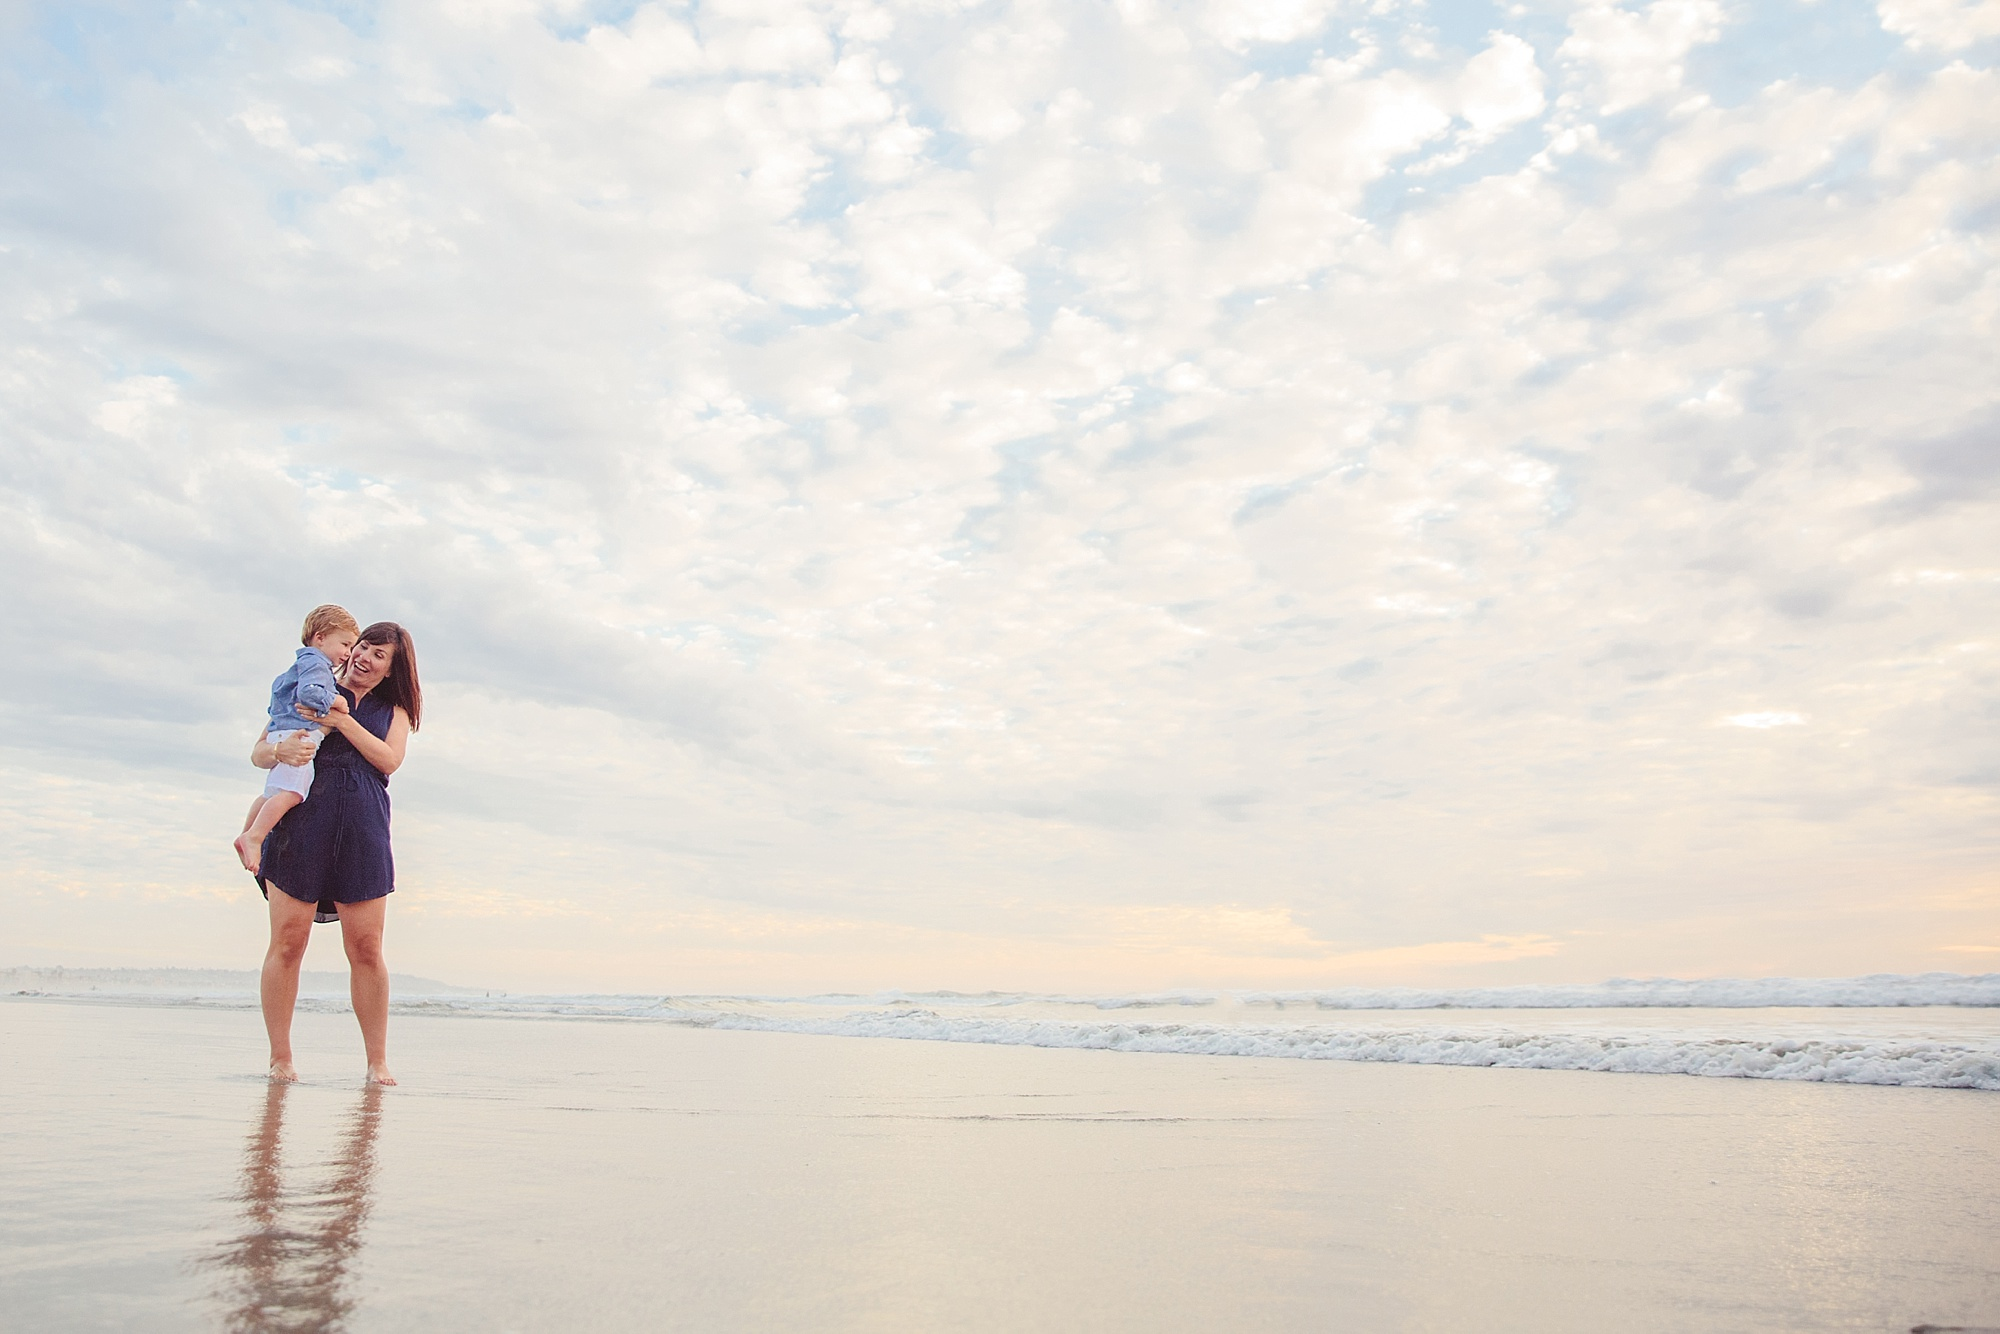 San Diego Photographer | San Diego Beach Pictures